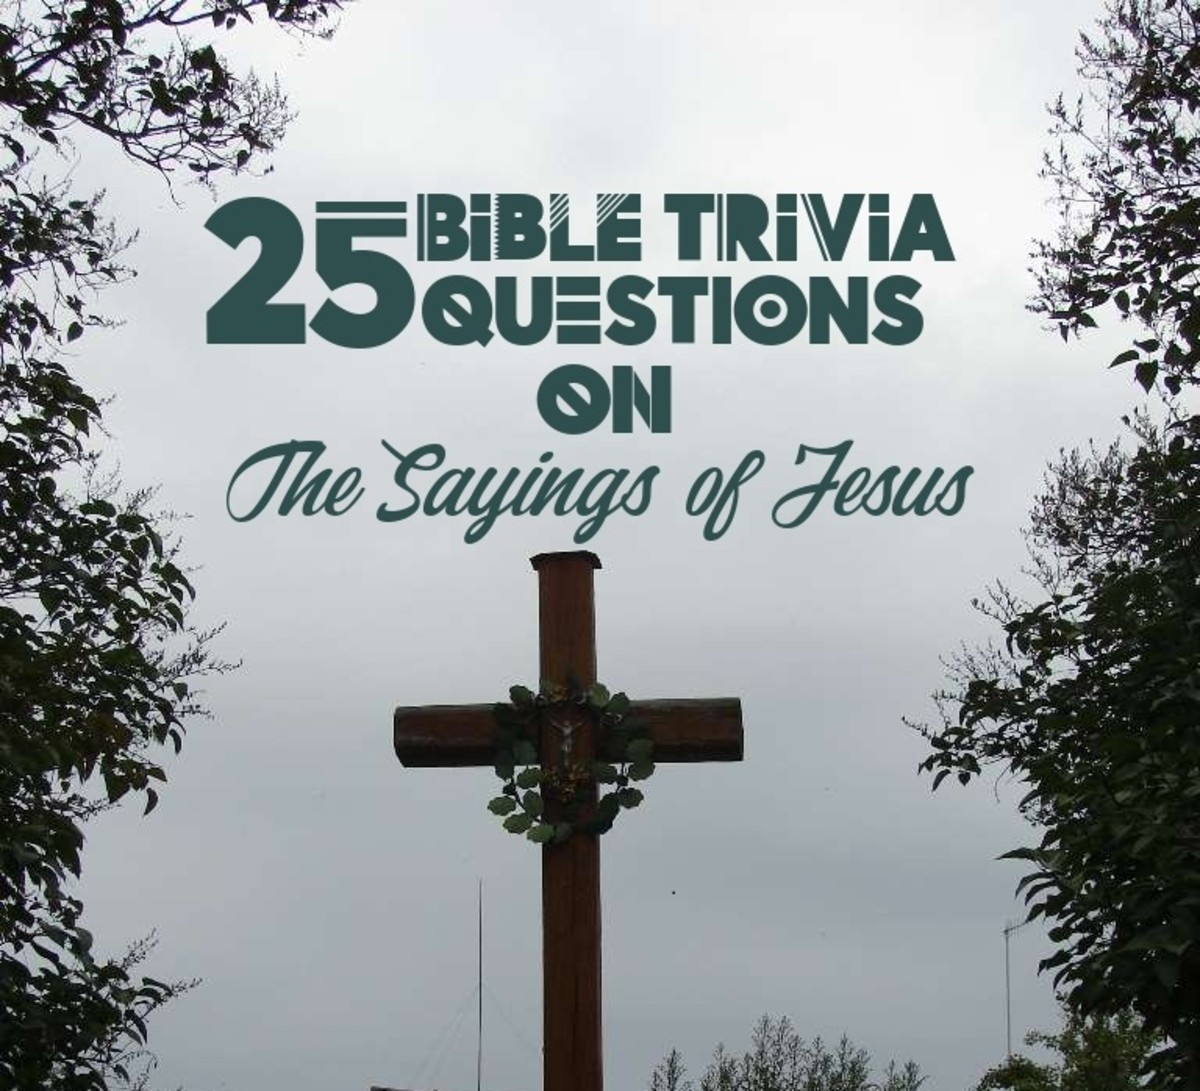 25 Bible Trivia Questions on the Sayings of Jesus